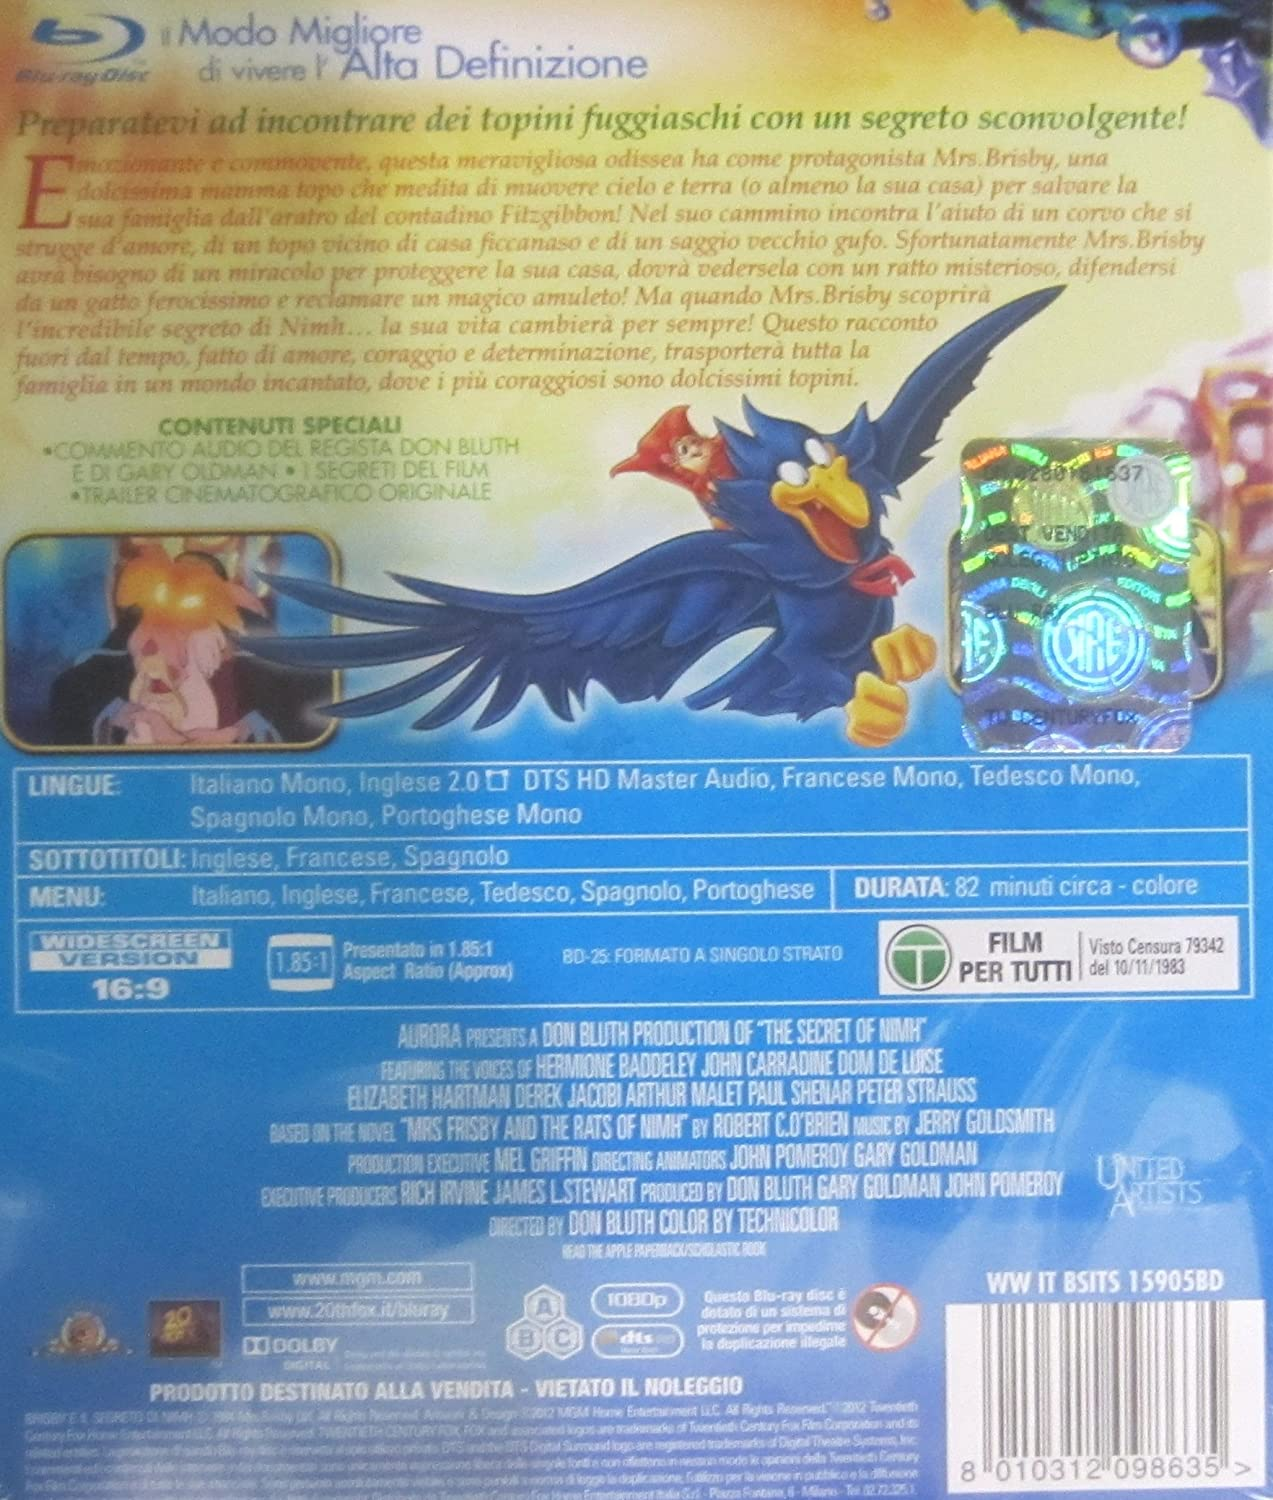 brisby e il segreto di nimh blu-ray disc registi Italia Blu-ray: Amazon.es: vari: Cine y Series TV